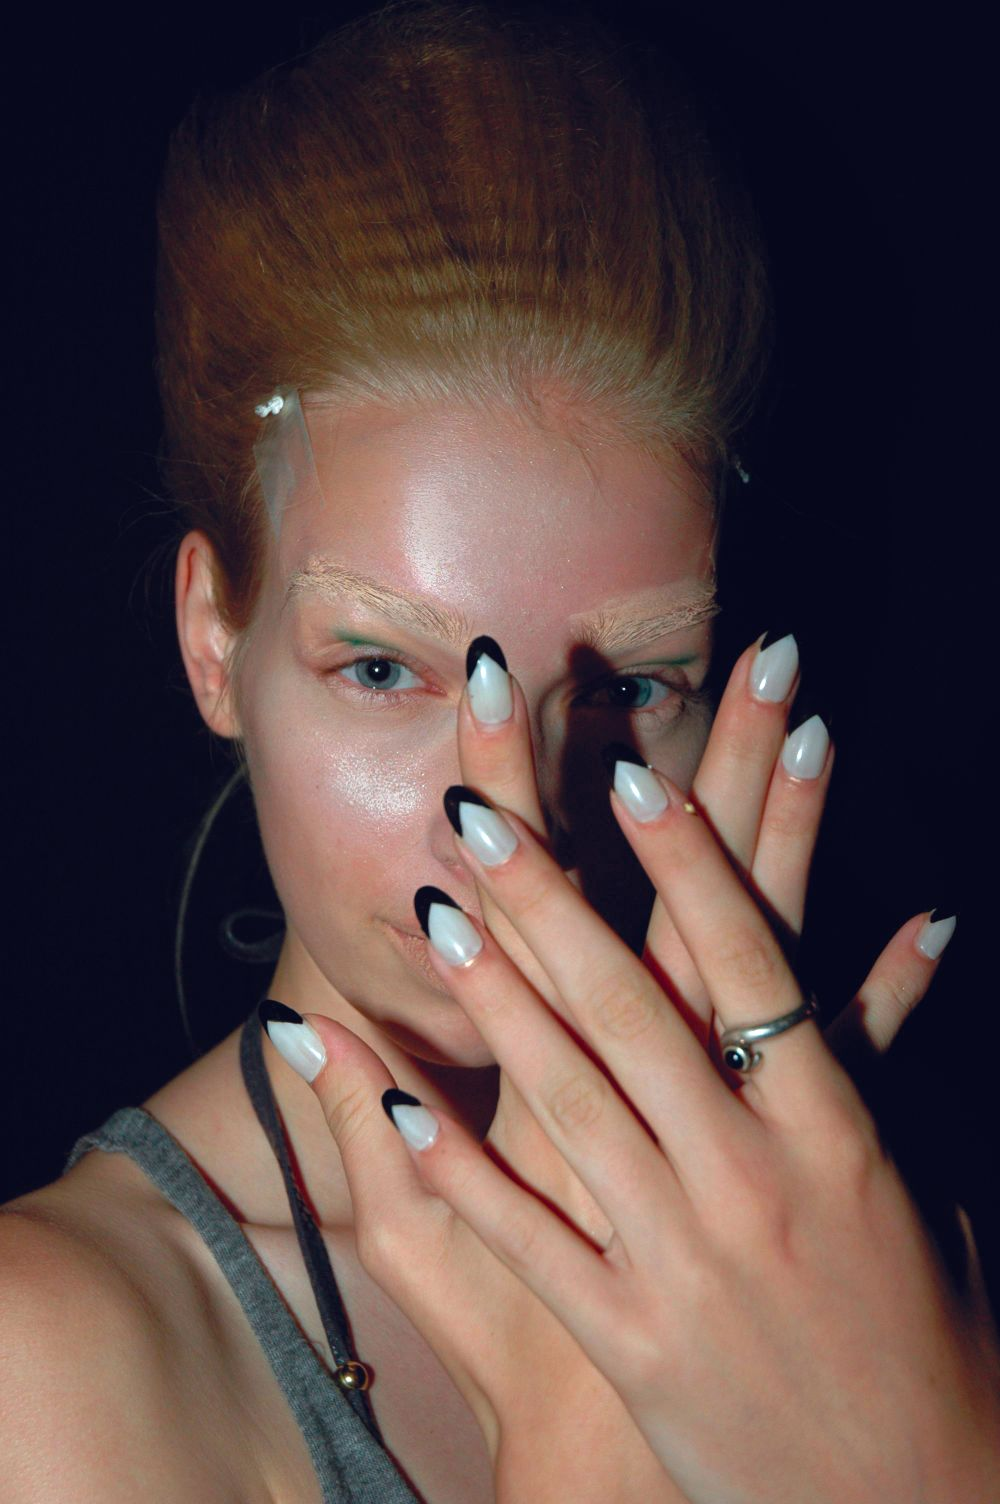 <p>Pattie Yankee created press-on nails for female models at the Jose Duran show using <strong>Dashing Diva</strong> The Met, a white polish, for a base, and Limo Service, a black polish, to create a chevron French. Male models were also given a similar manicure and pedicure to emulate the androgynous tone. (Photography by Ann Lawlor)</p>